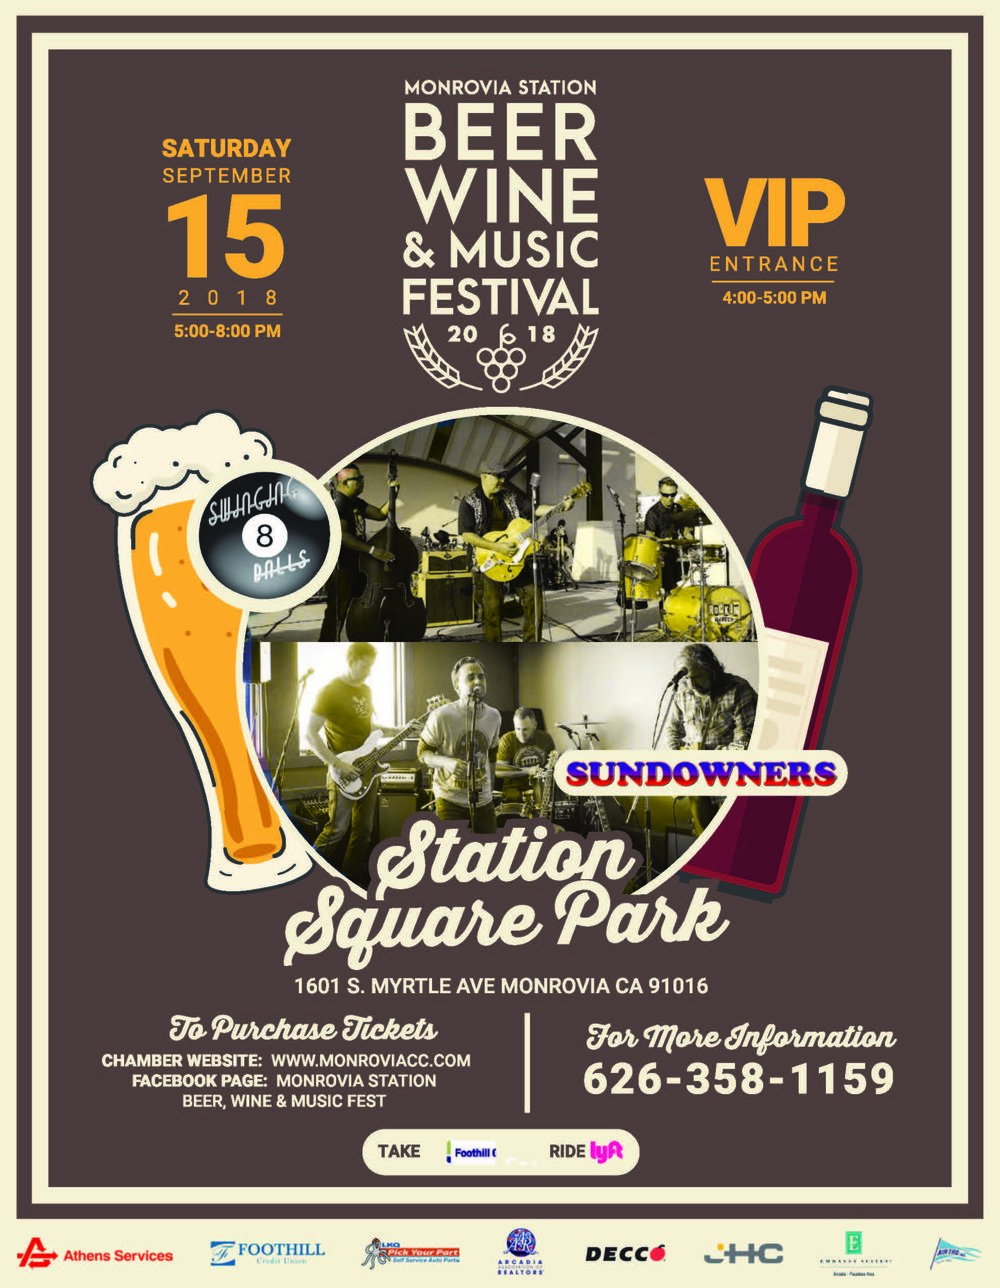 beer wine & Music festival - September 15th, 2018